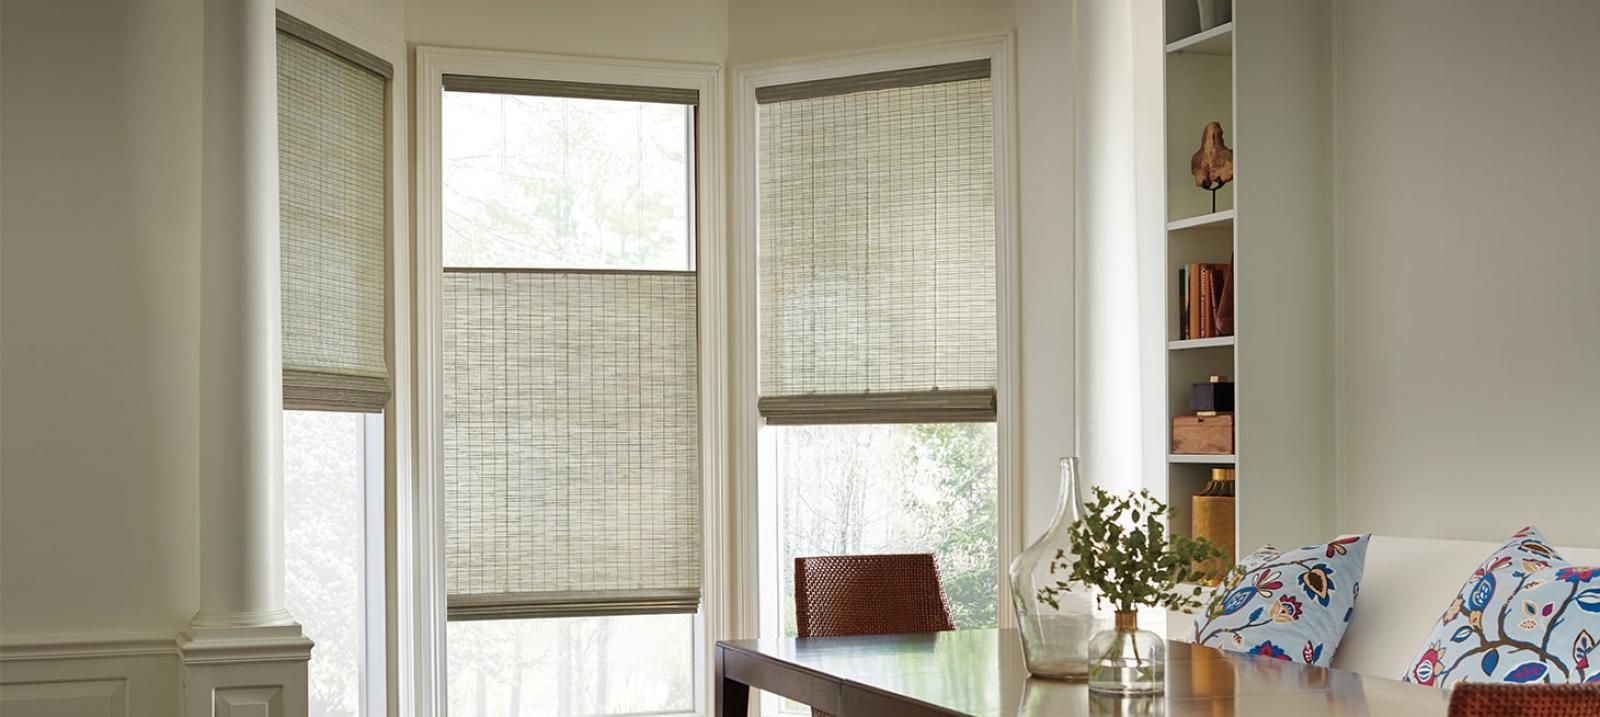 Pictures of woven shades bottom up